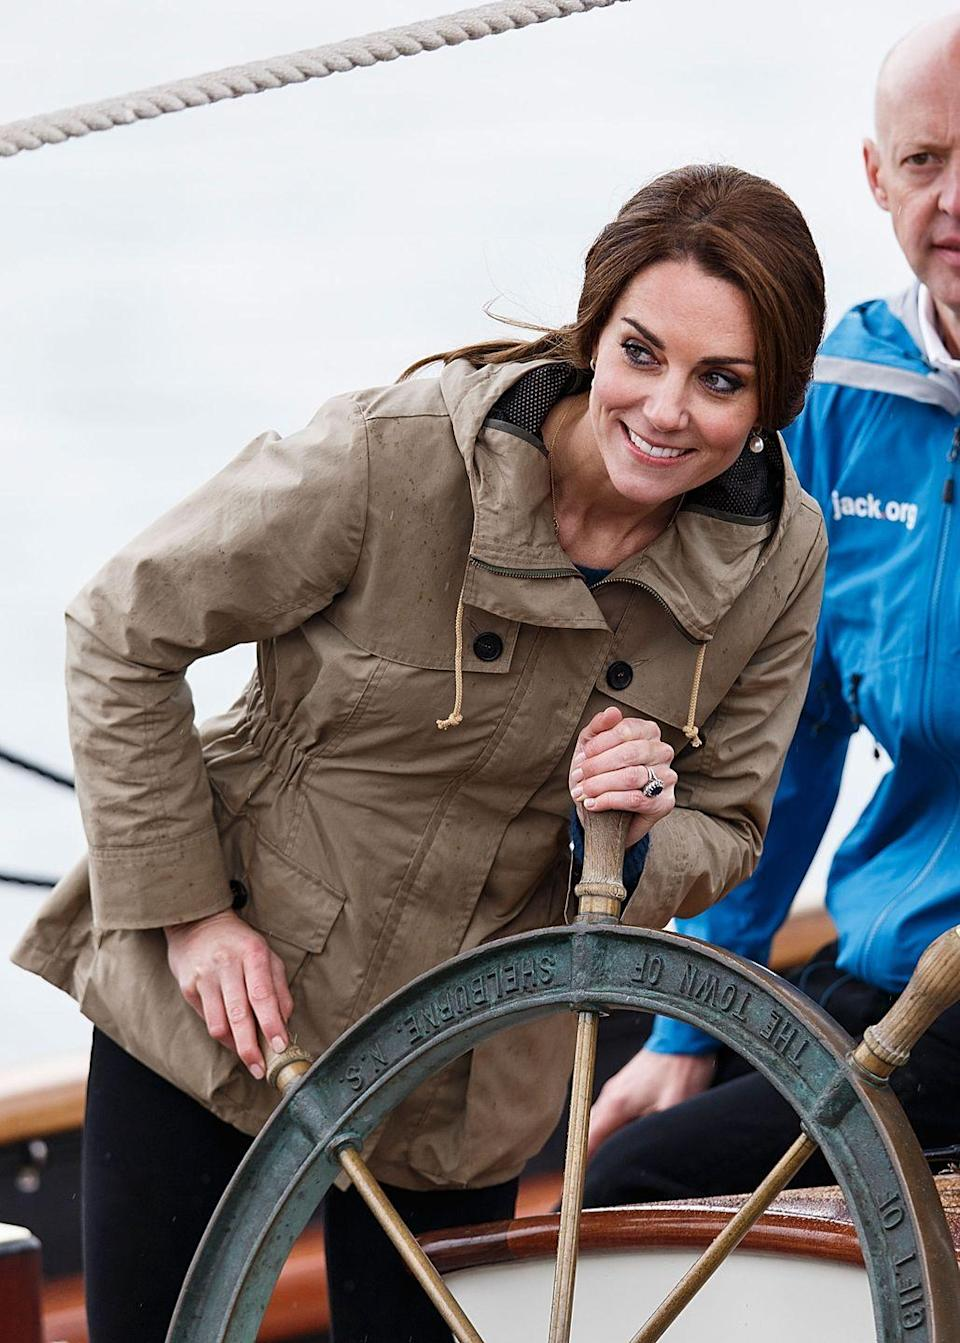 """<p>Kate got nautical while steering the Pacific Grace ship in <a href=""""https://www.townandcountrymag.com/style/fashion-trends/g2877/kate-middleton-royal-canada-tour-outfits/"""" rel=""""nofollow noopener"""" target=""""_blank"""" data-ylk=""""slk:Canada's Victoria Harbour"""" class=""""link rapid-noclick-resp"""">Canada's Victoria Harbour</a>. She chose a sporty khaki anorak for the outing. </p>"""